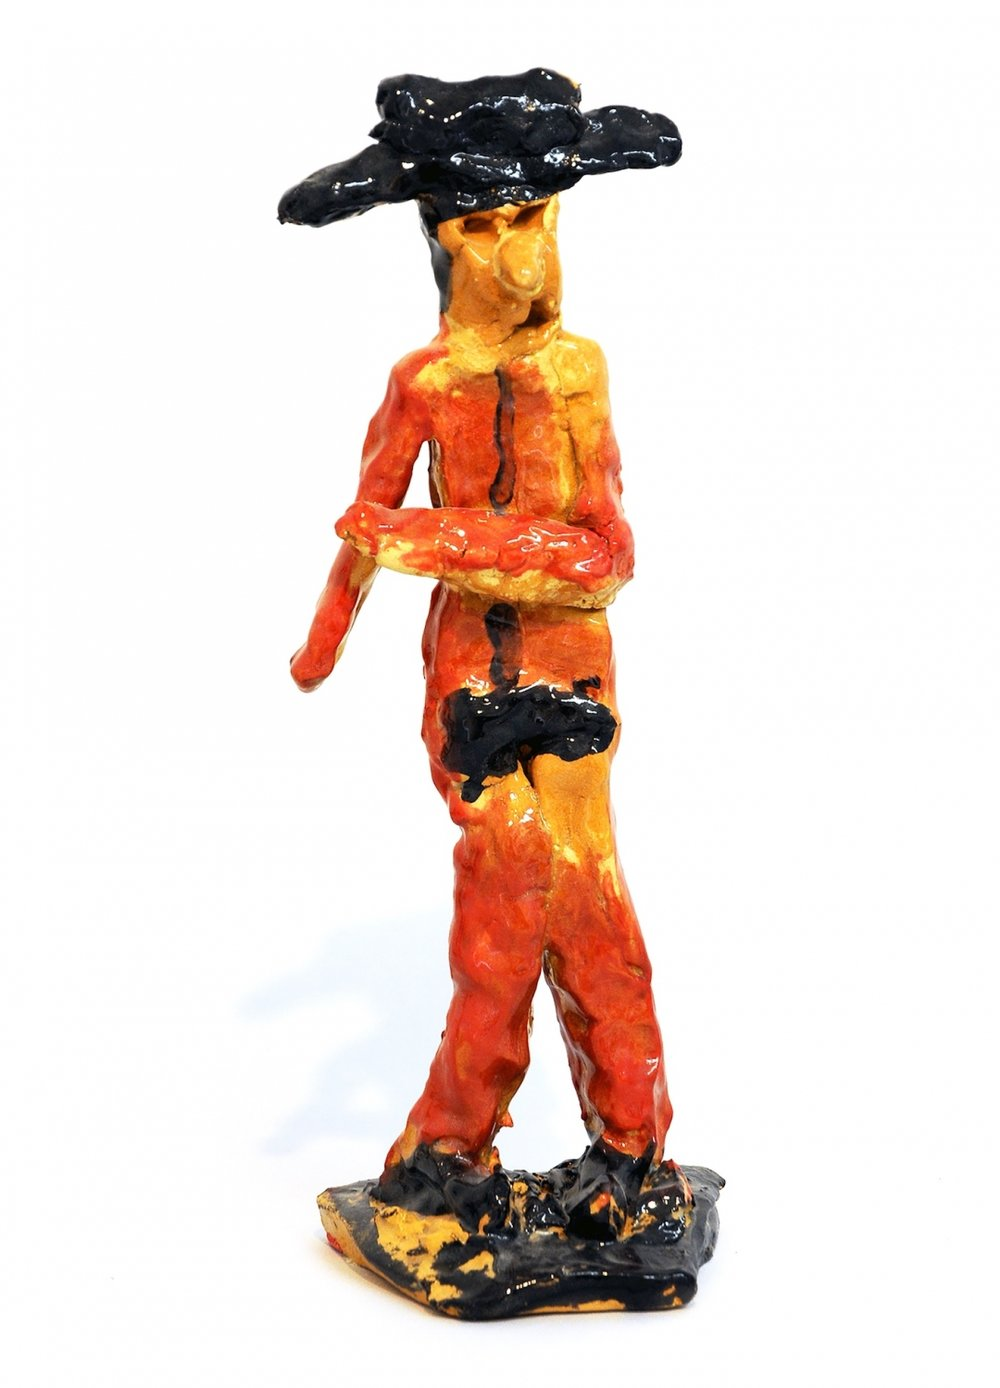 Billy White,  Untitled (Cowboy) , 2018, painted and glazed ceramic, 14 x 4.5 x 4 inches